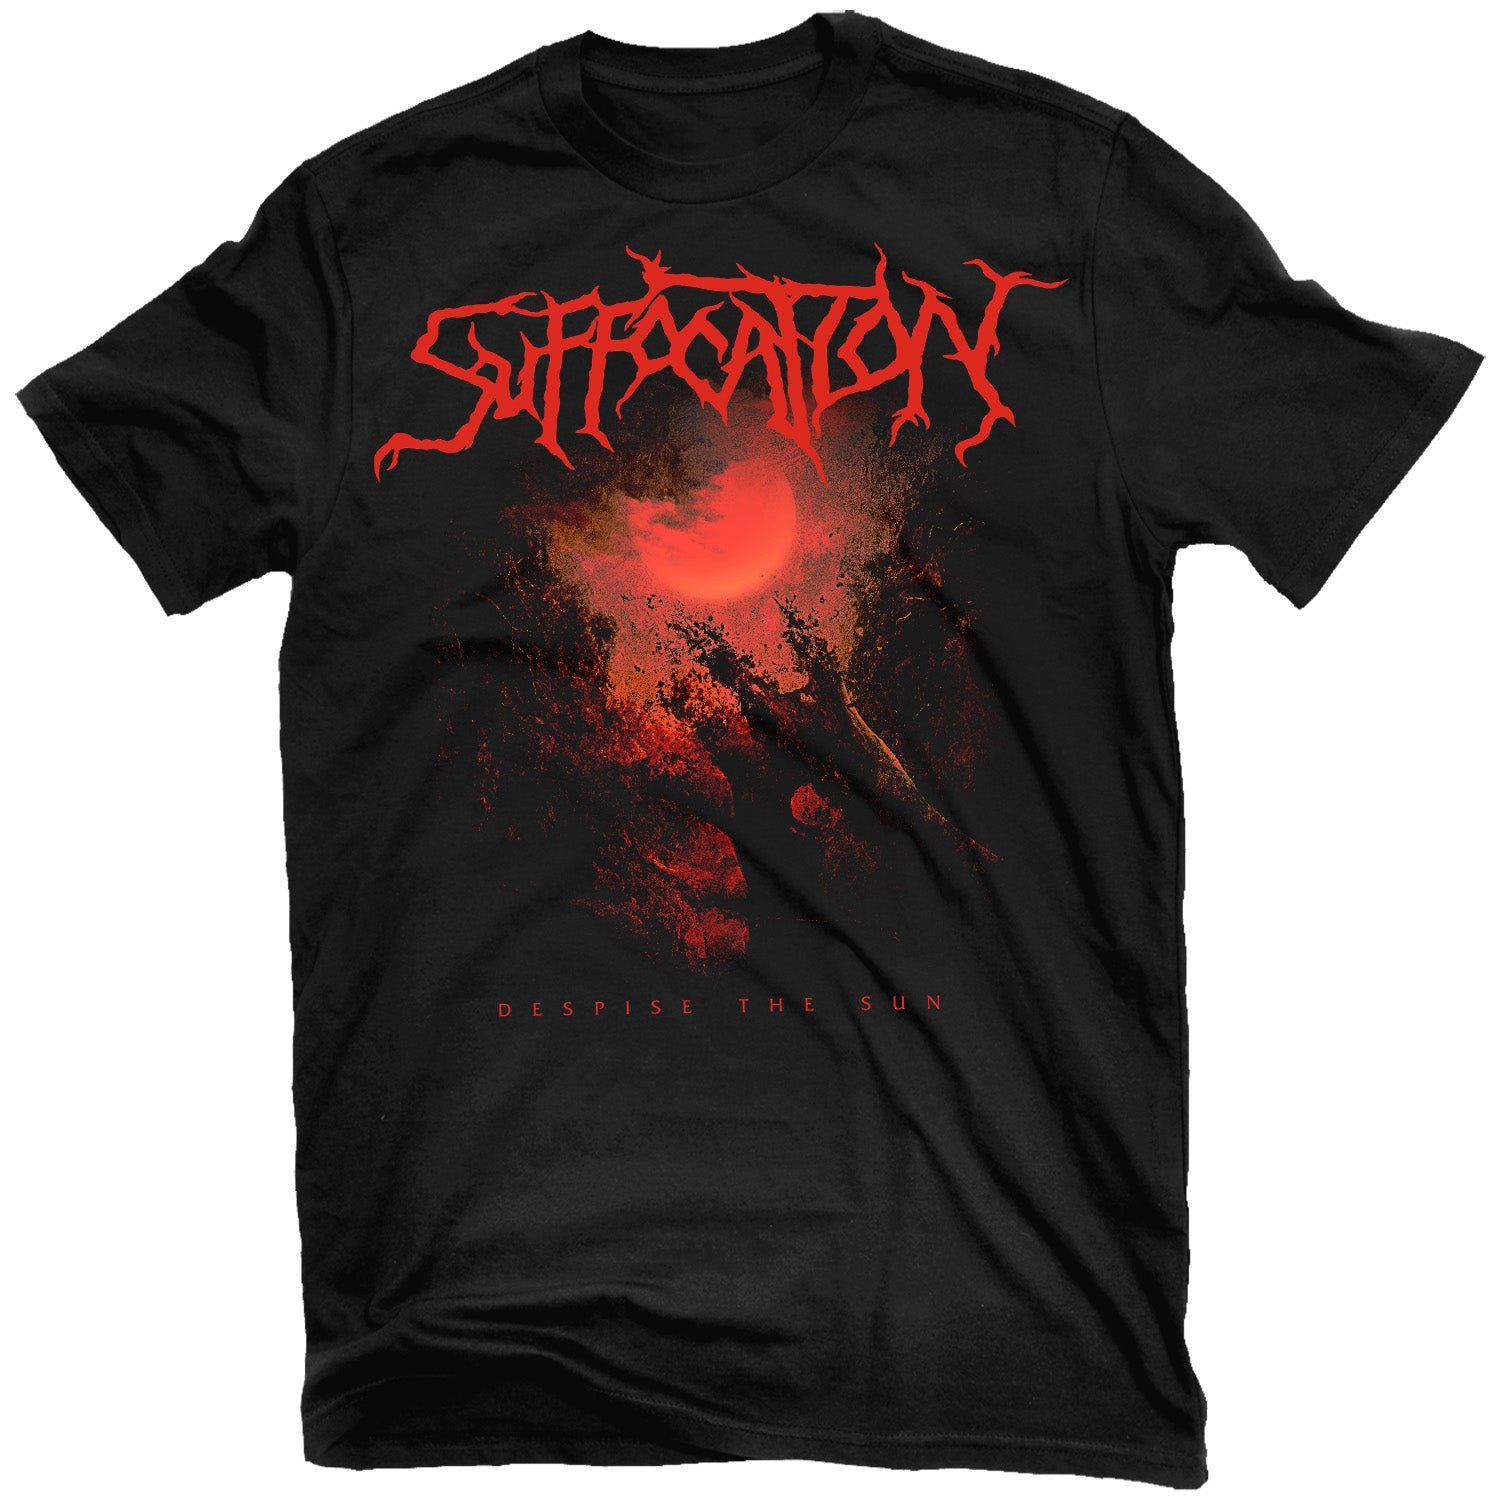 Suffocation Despise The Sun T-Shirt Relapse Records